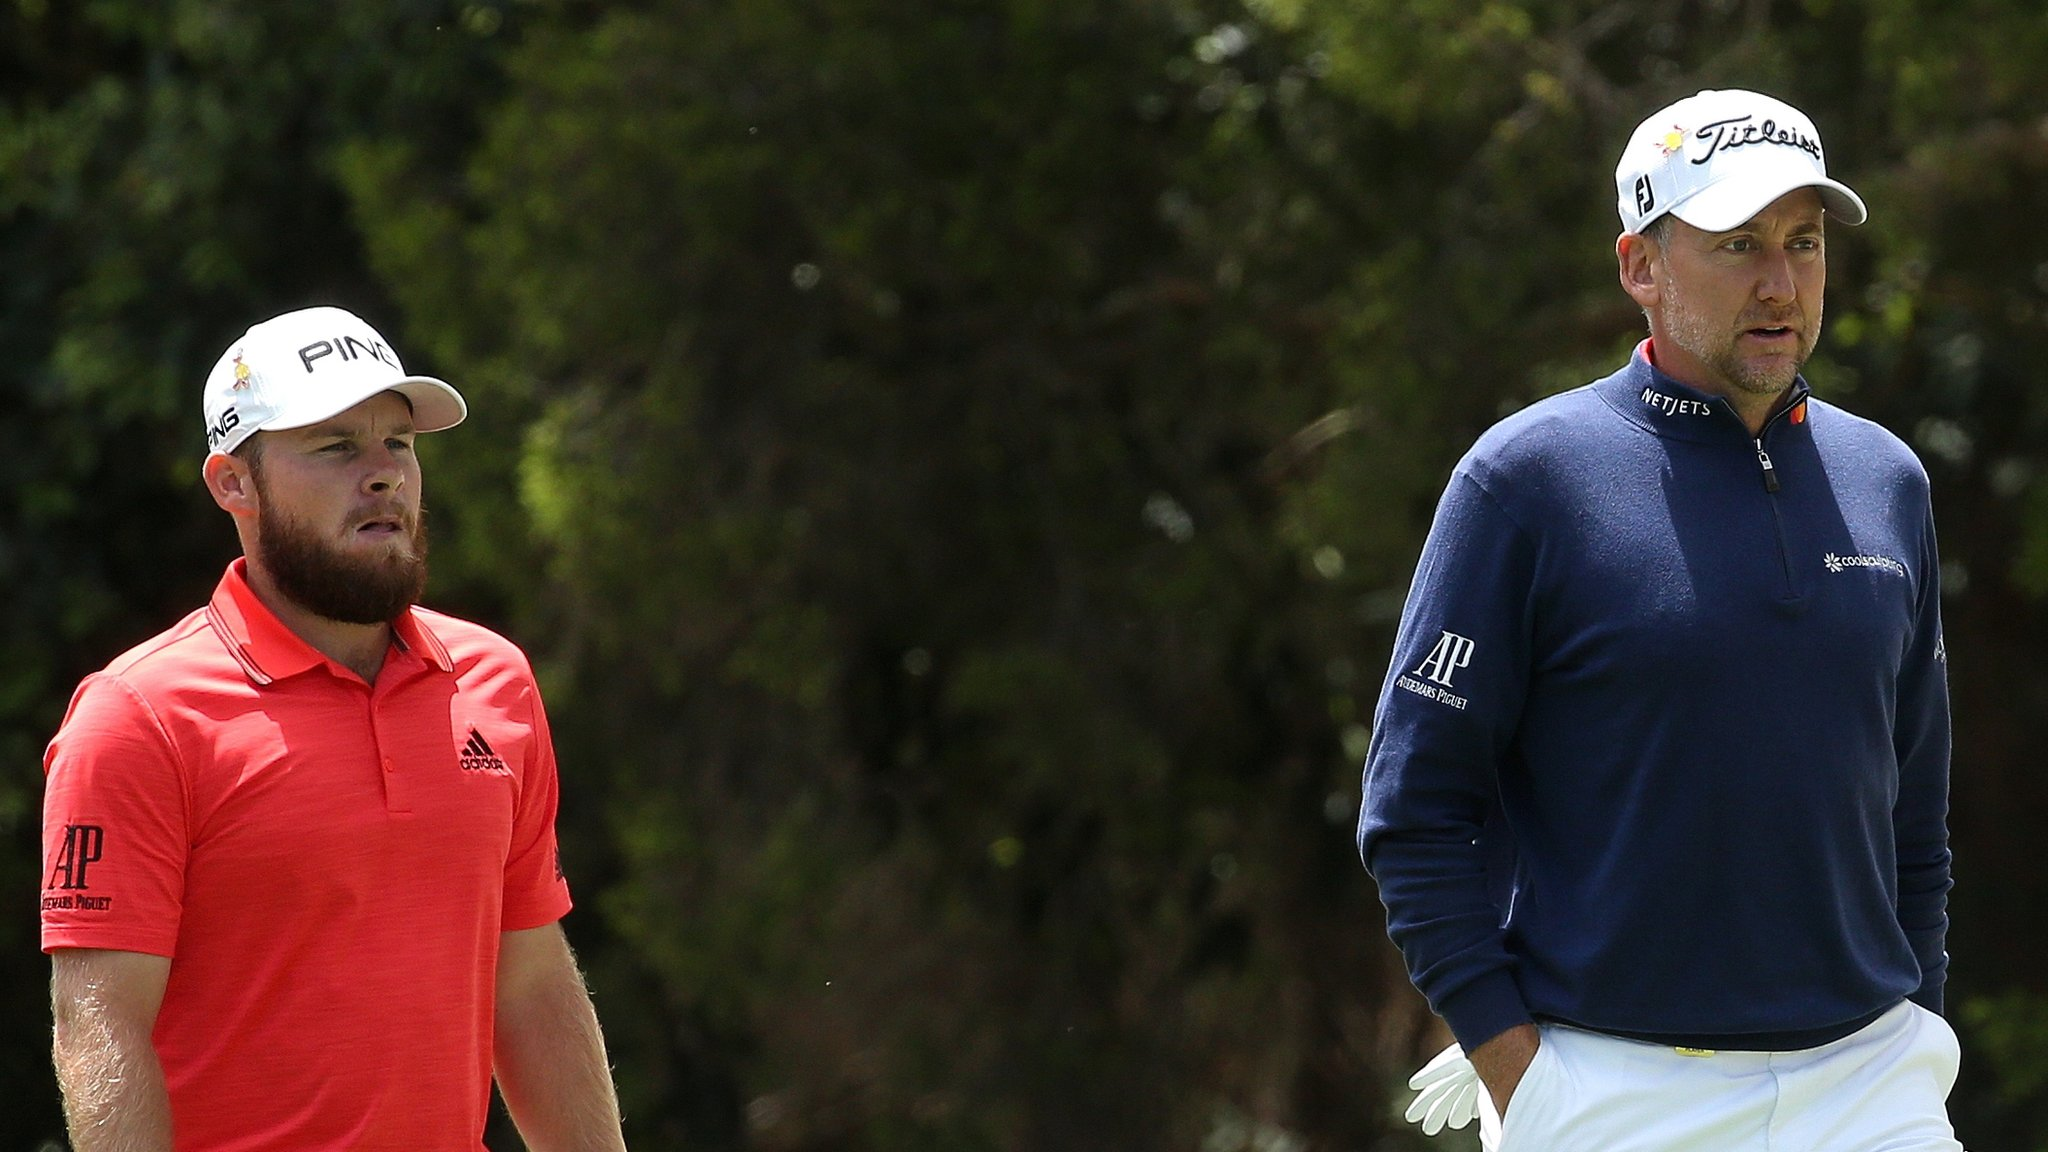 World Cup of Golf: England's Tyrrell Hatton and Ian Poulter in joint lead